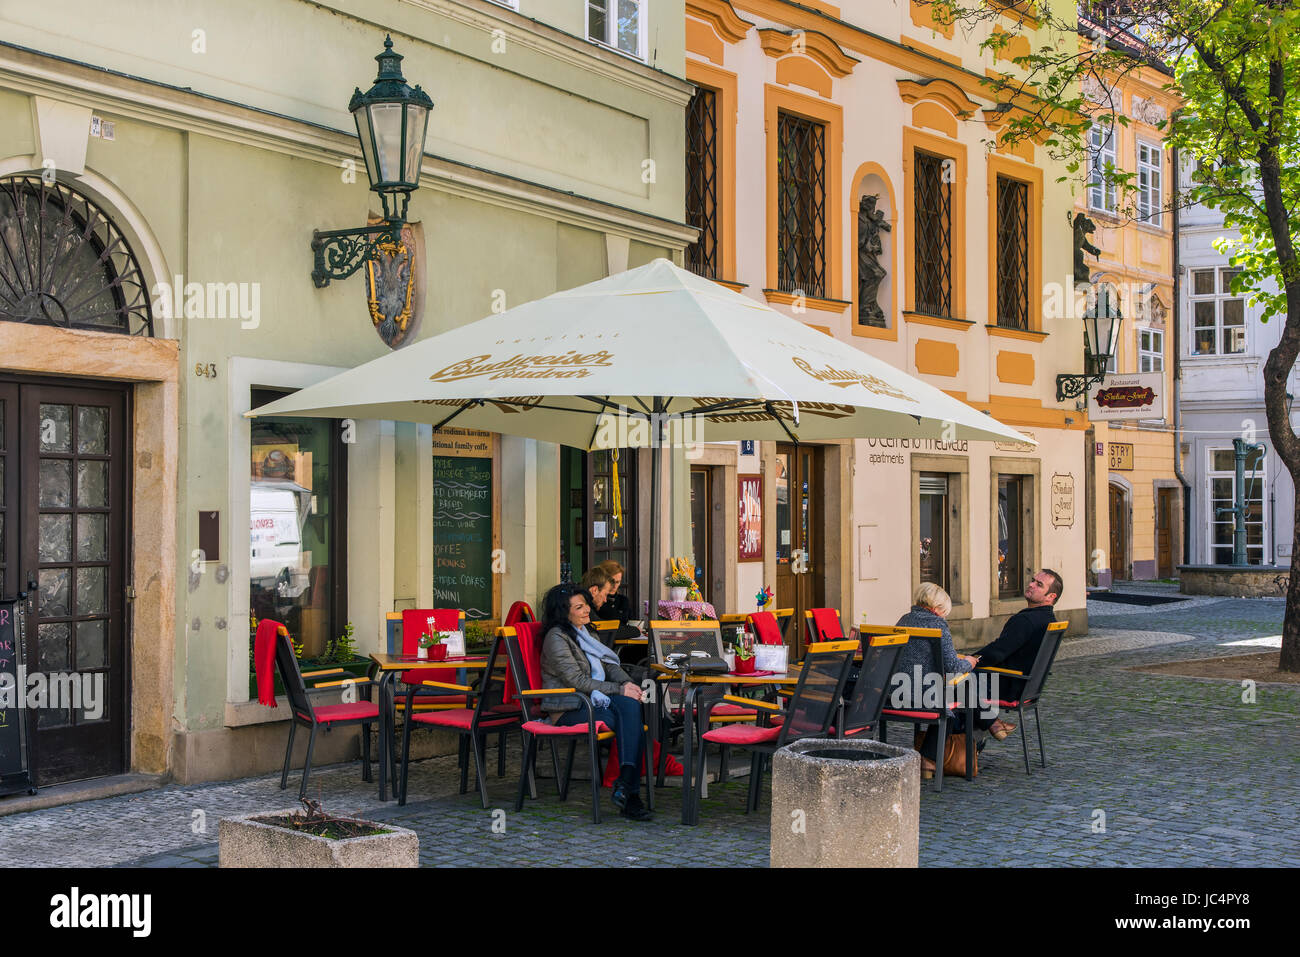 Outdoor cafe in the old town, Prague, Bohemia, Czech Republic - Stock Image